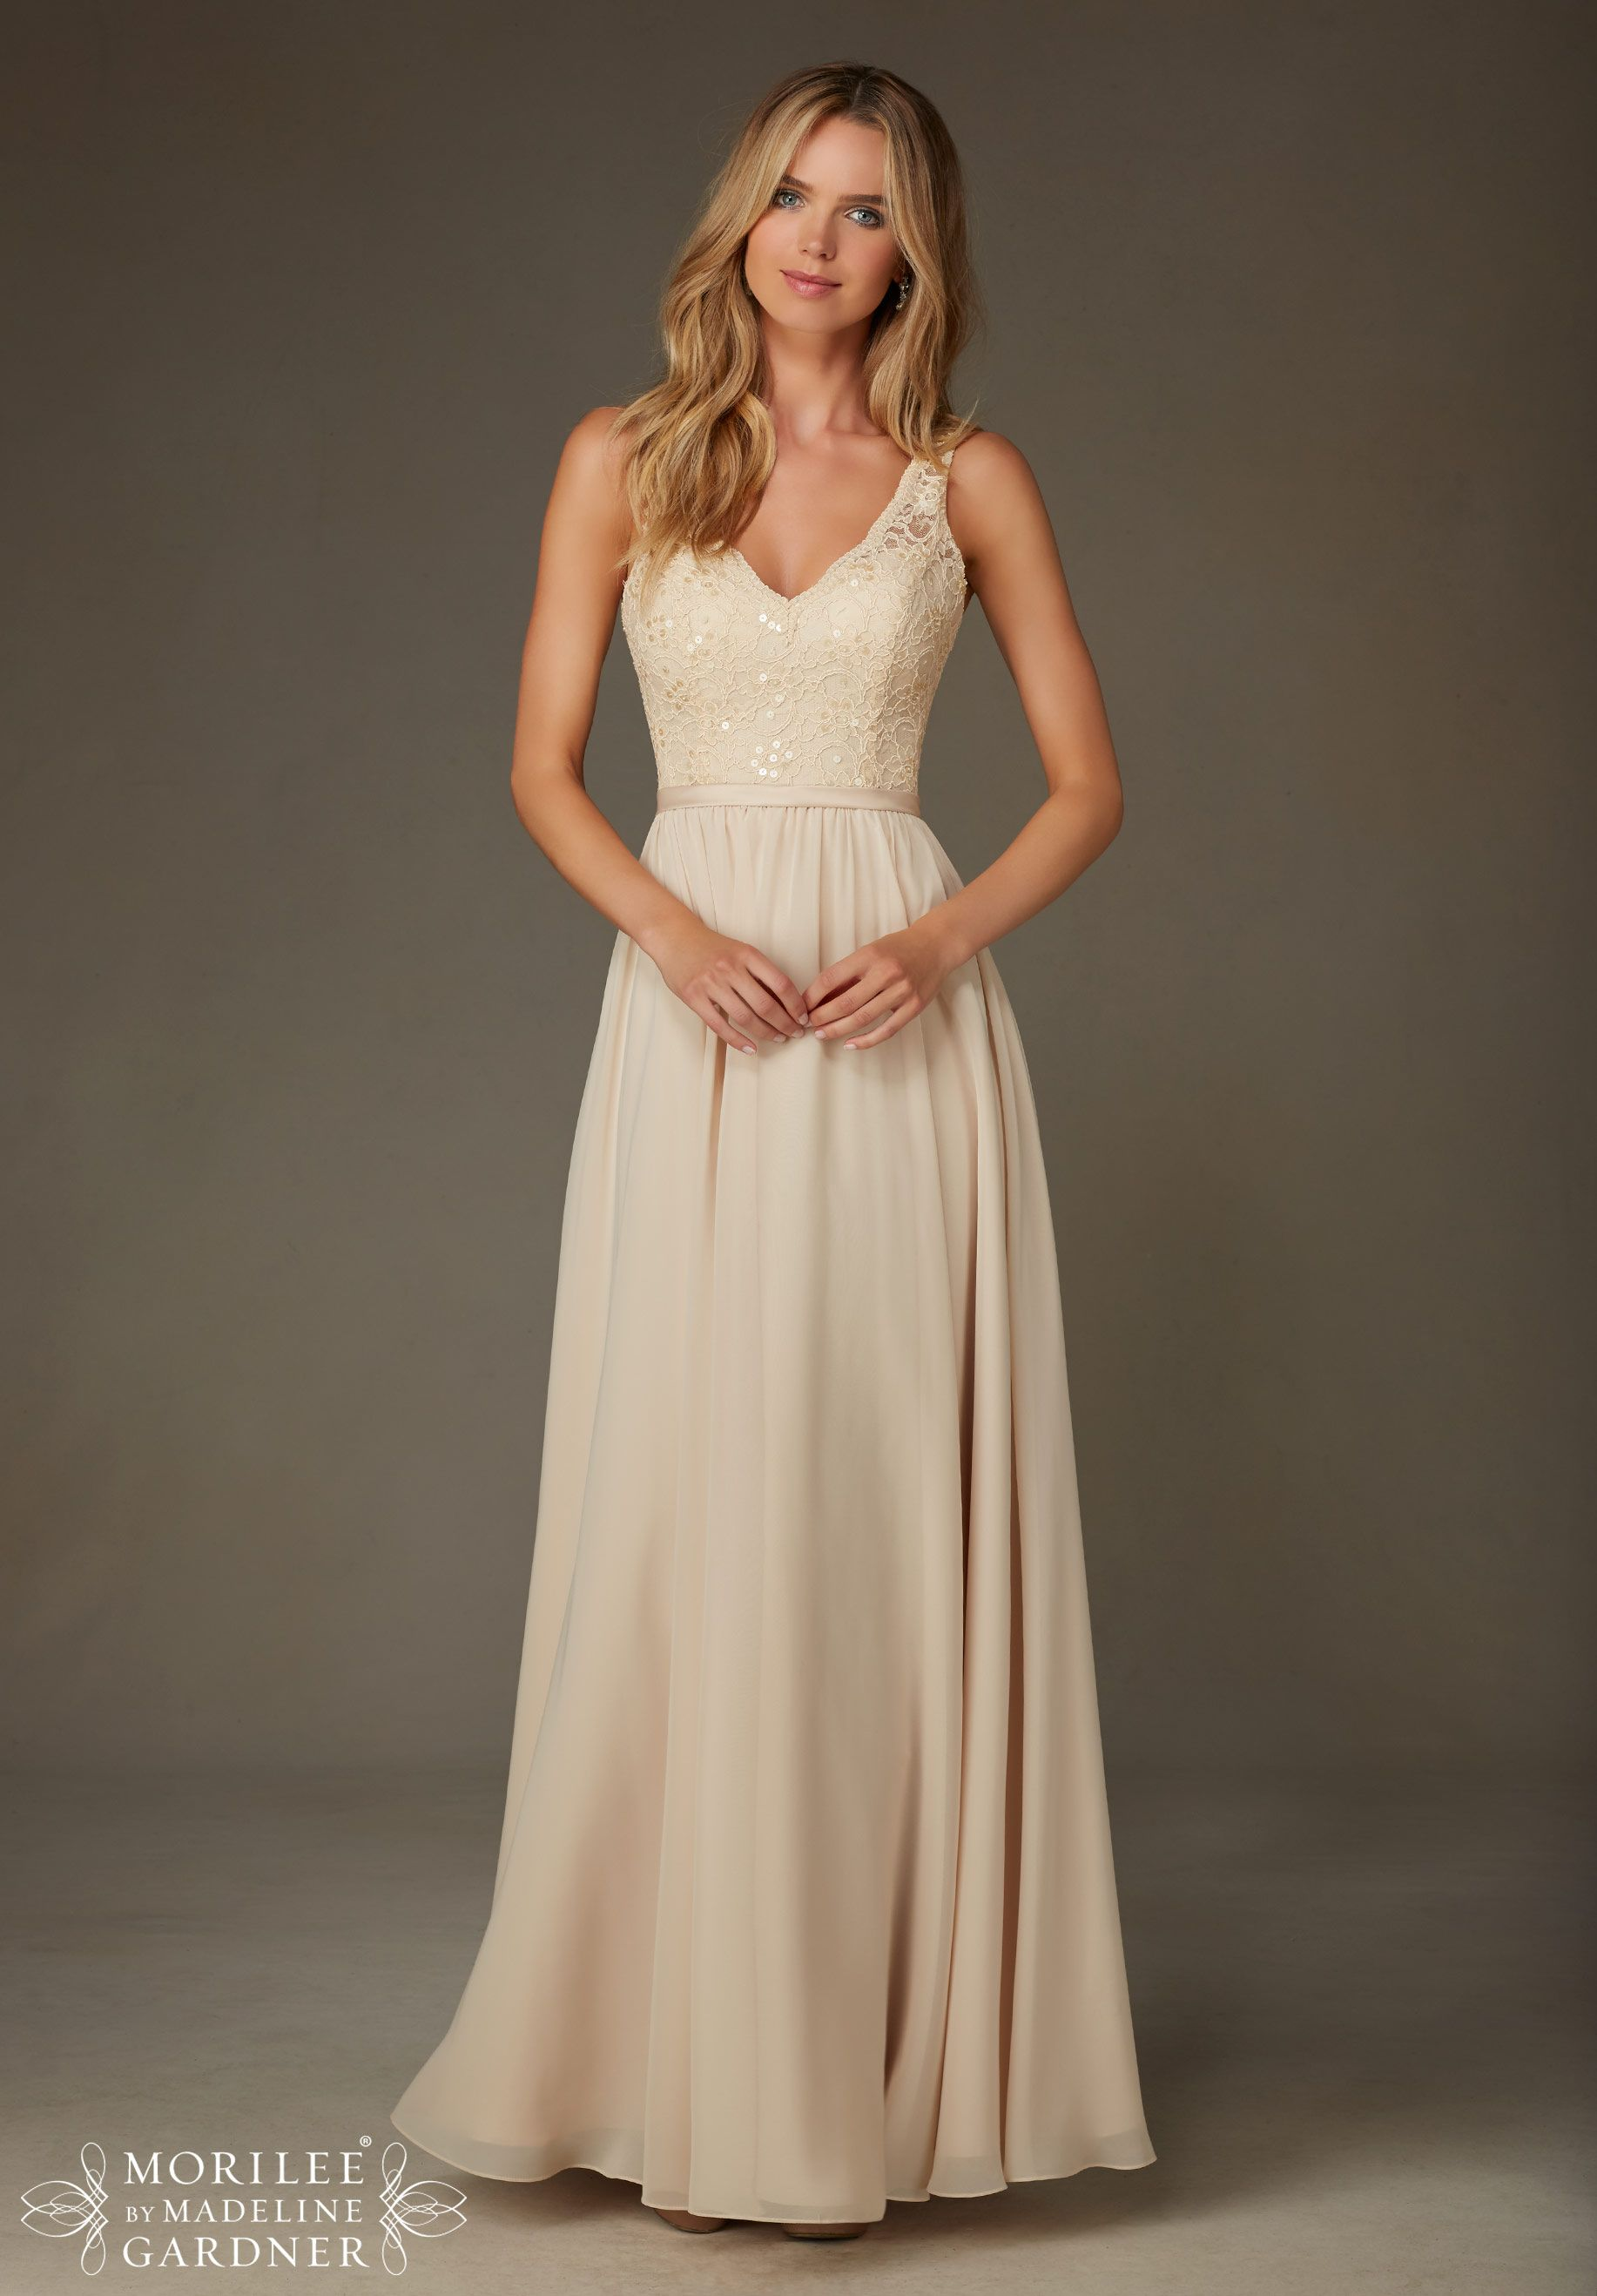 f20109811ed Bridesmaids Dresses Beaded Lace with Chiffon Available in all Mori Lee  Solid Lace Bridesmaids colors.